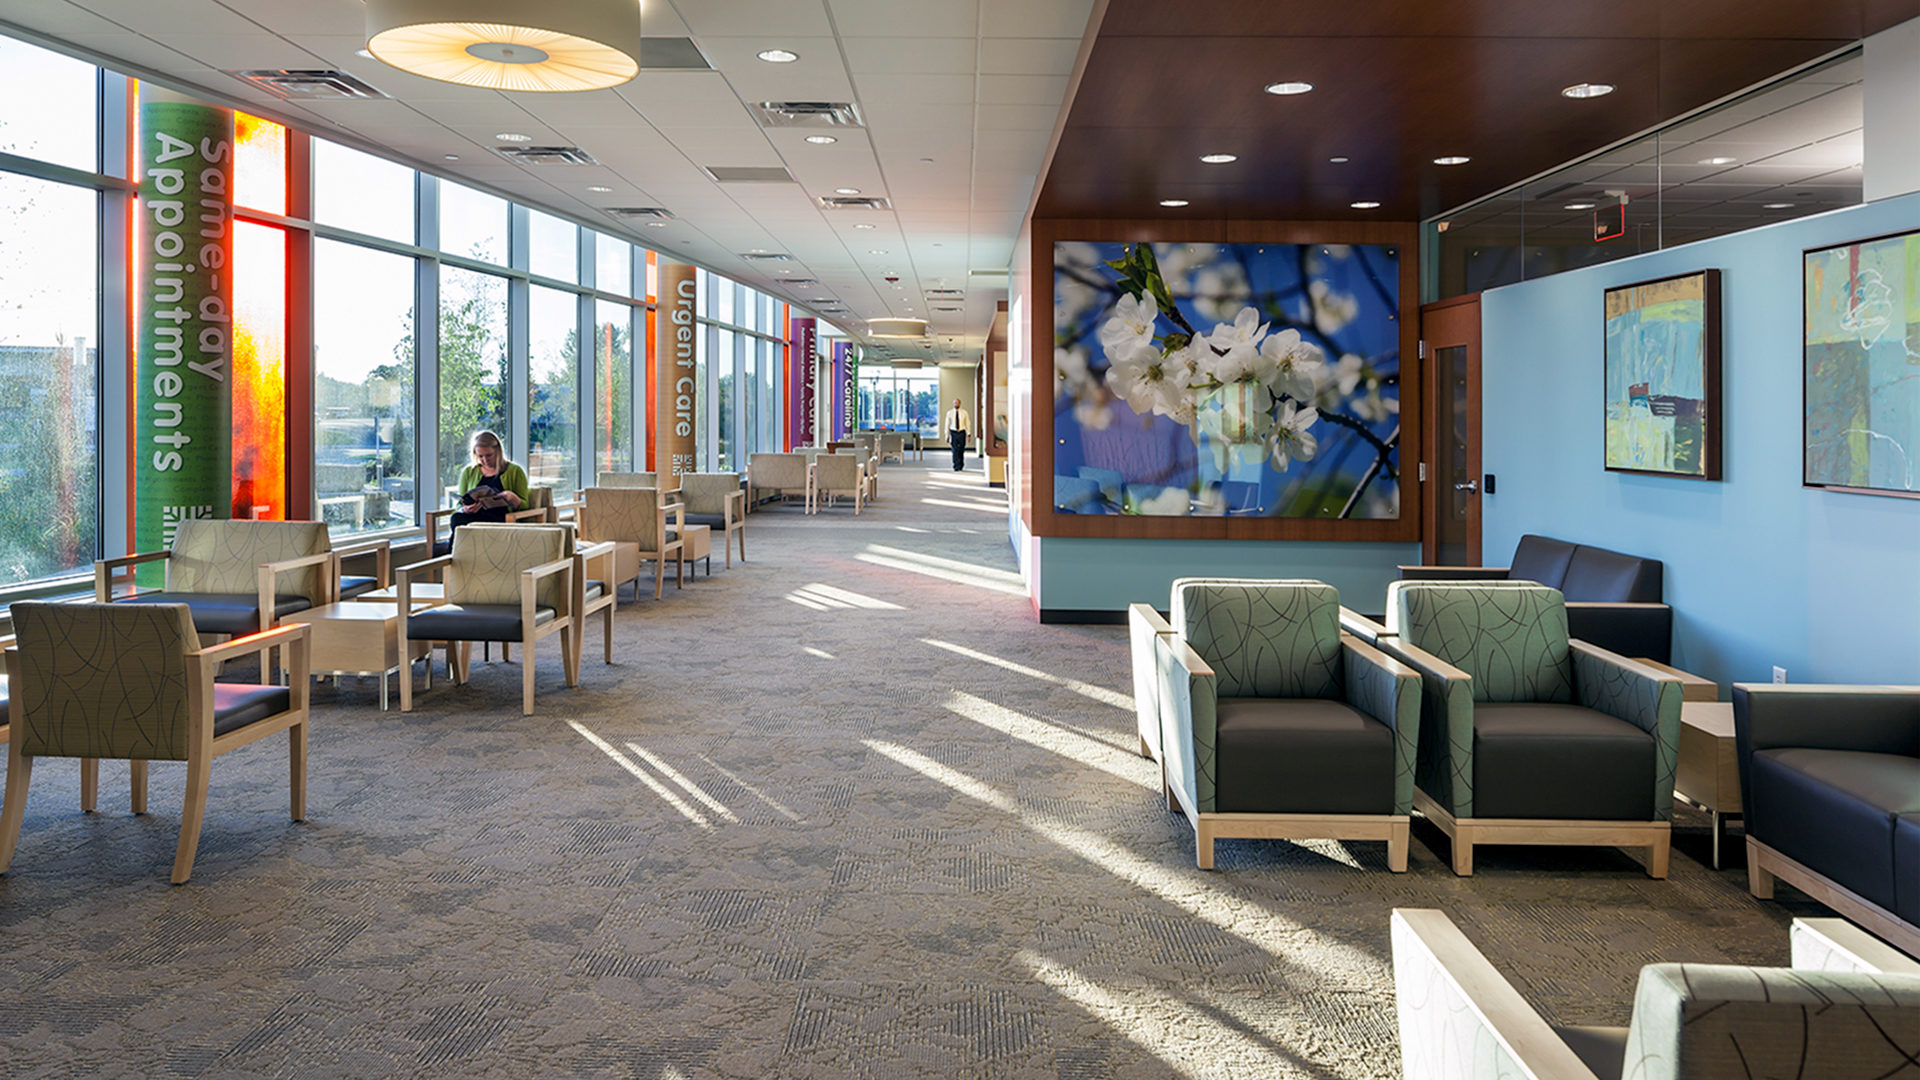 HealthPartners Riverway Clinic Anoka Interior Corridor With Cluster Seating Areas